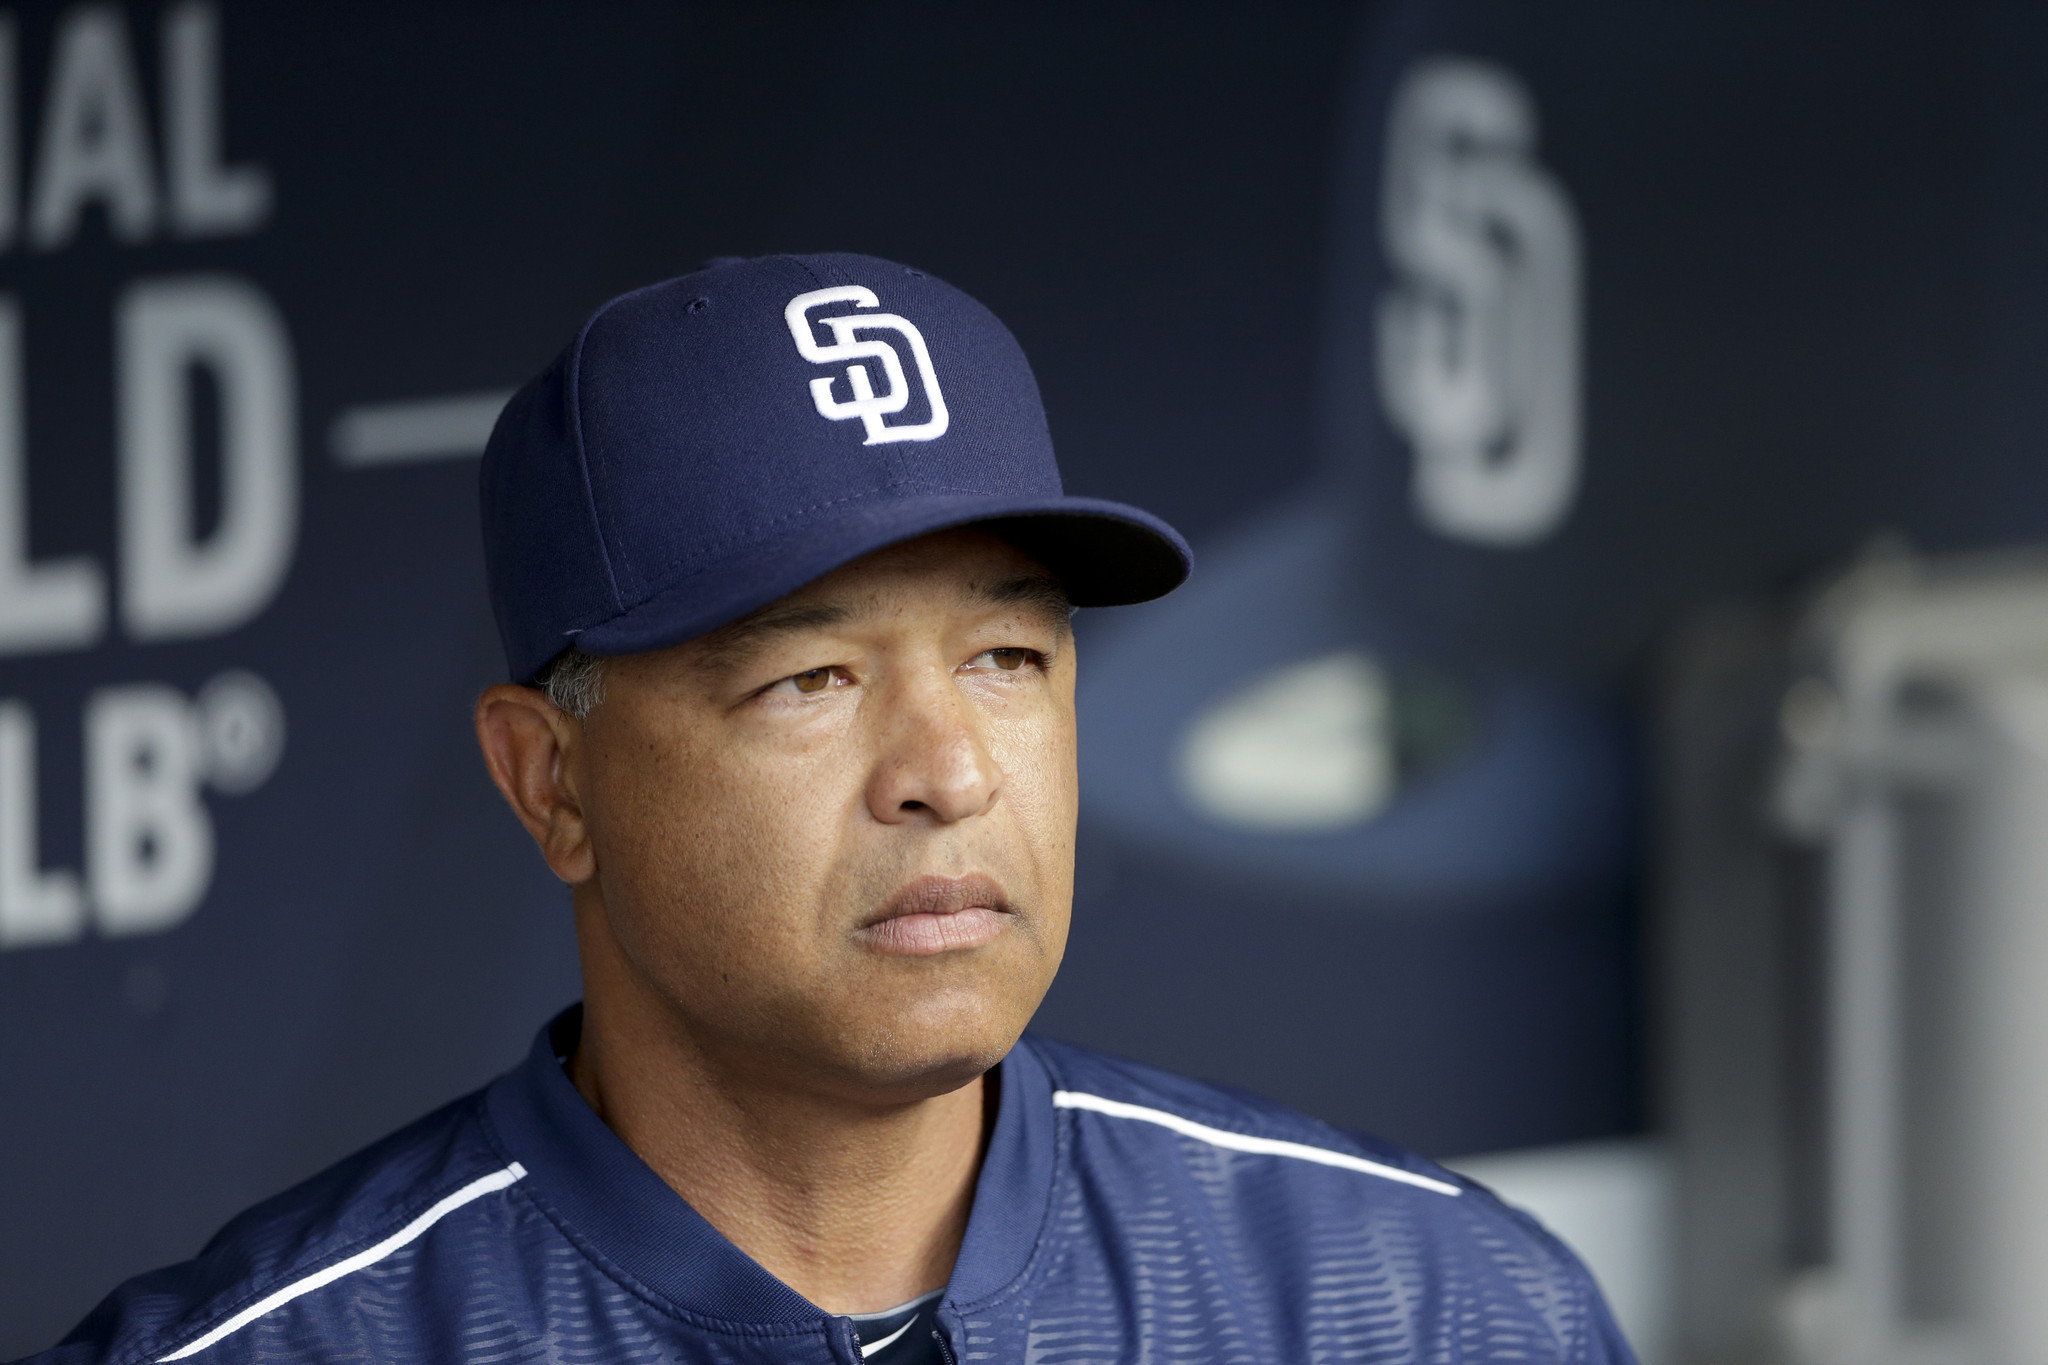 dodgers manager dave roberts appears   support  key players including adrian